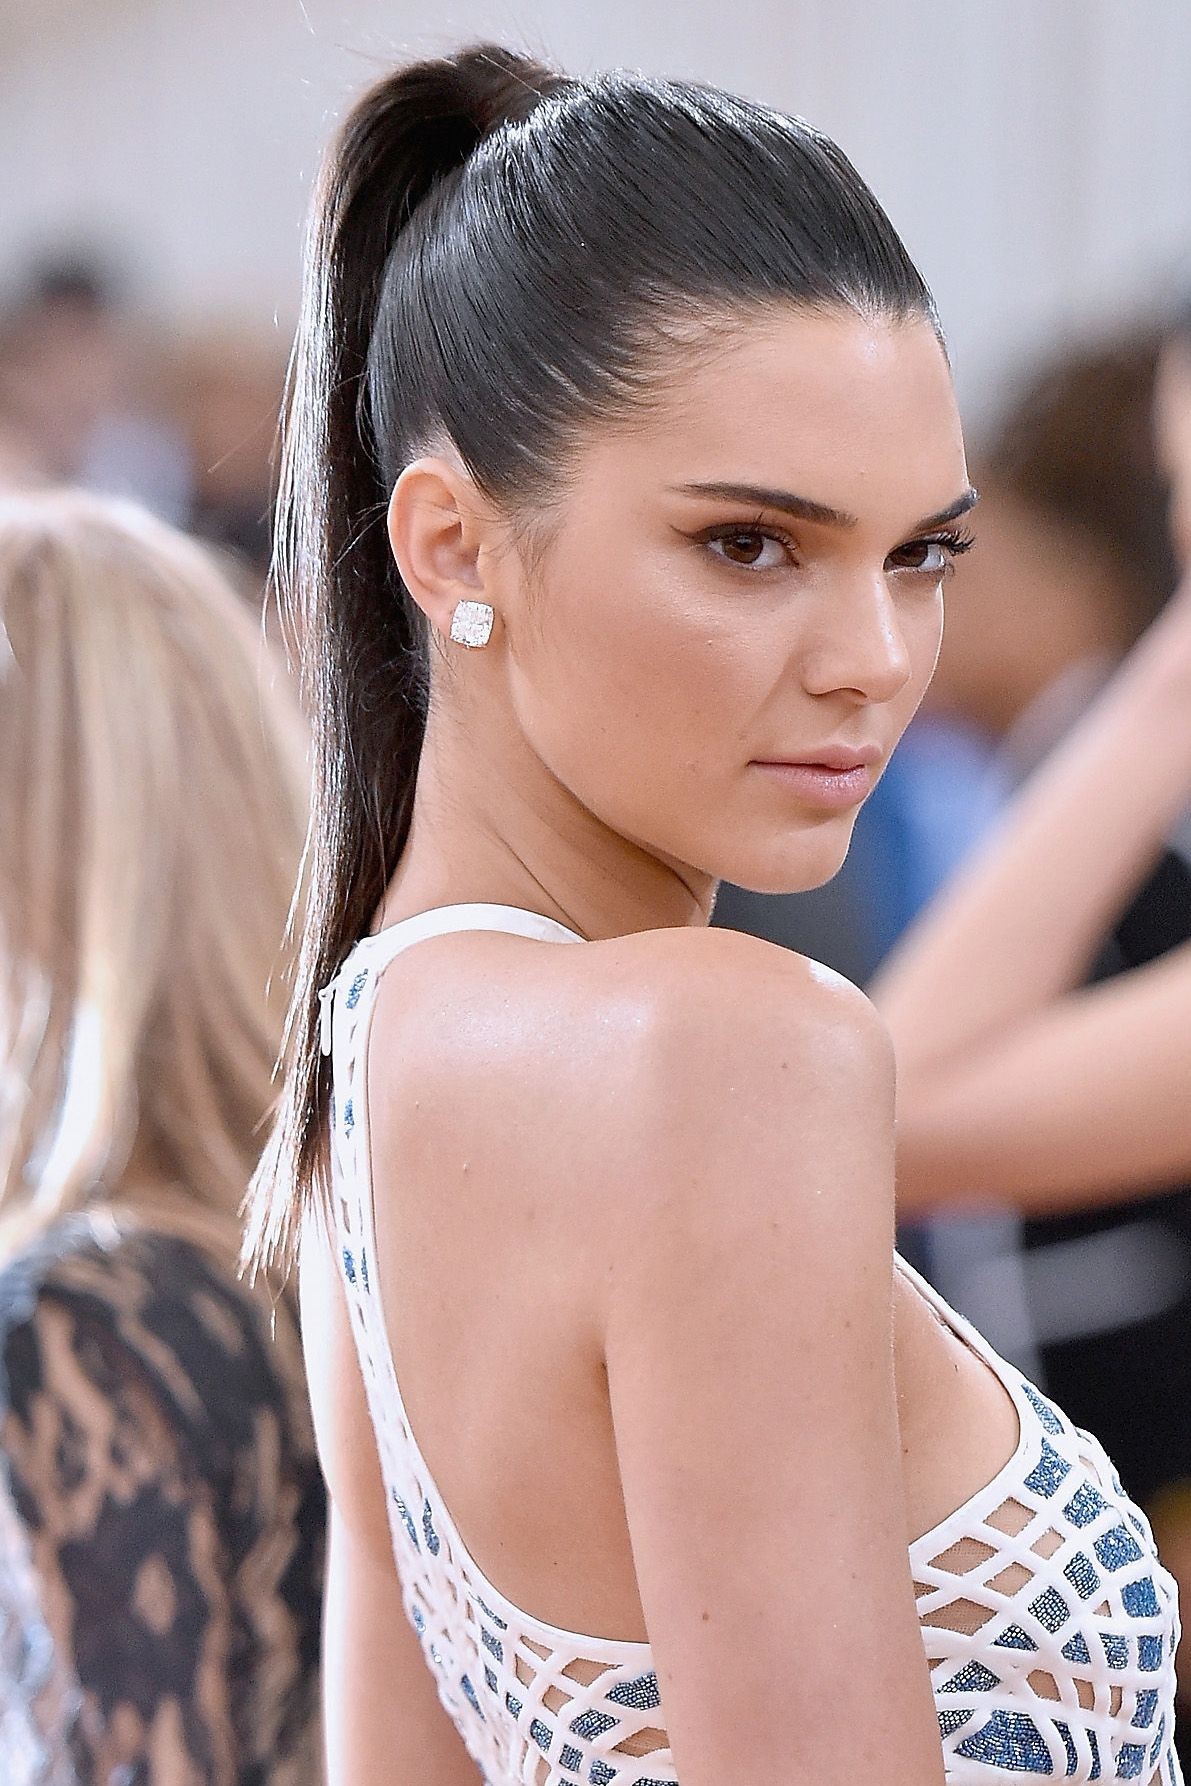 32 Best Hairstyles For Women 2018 New Celebrity Haircut